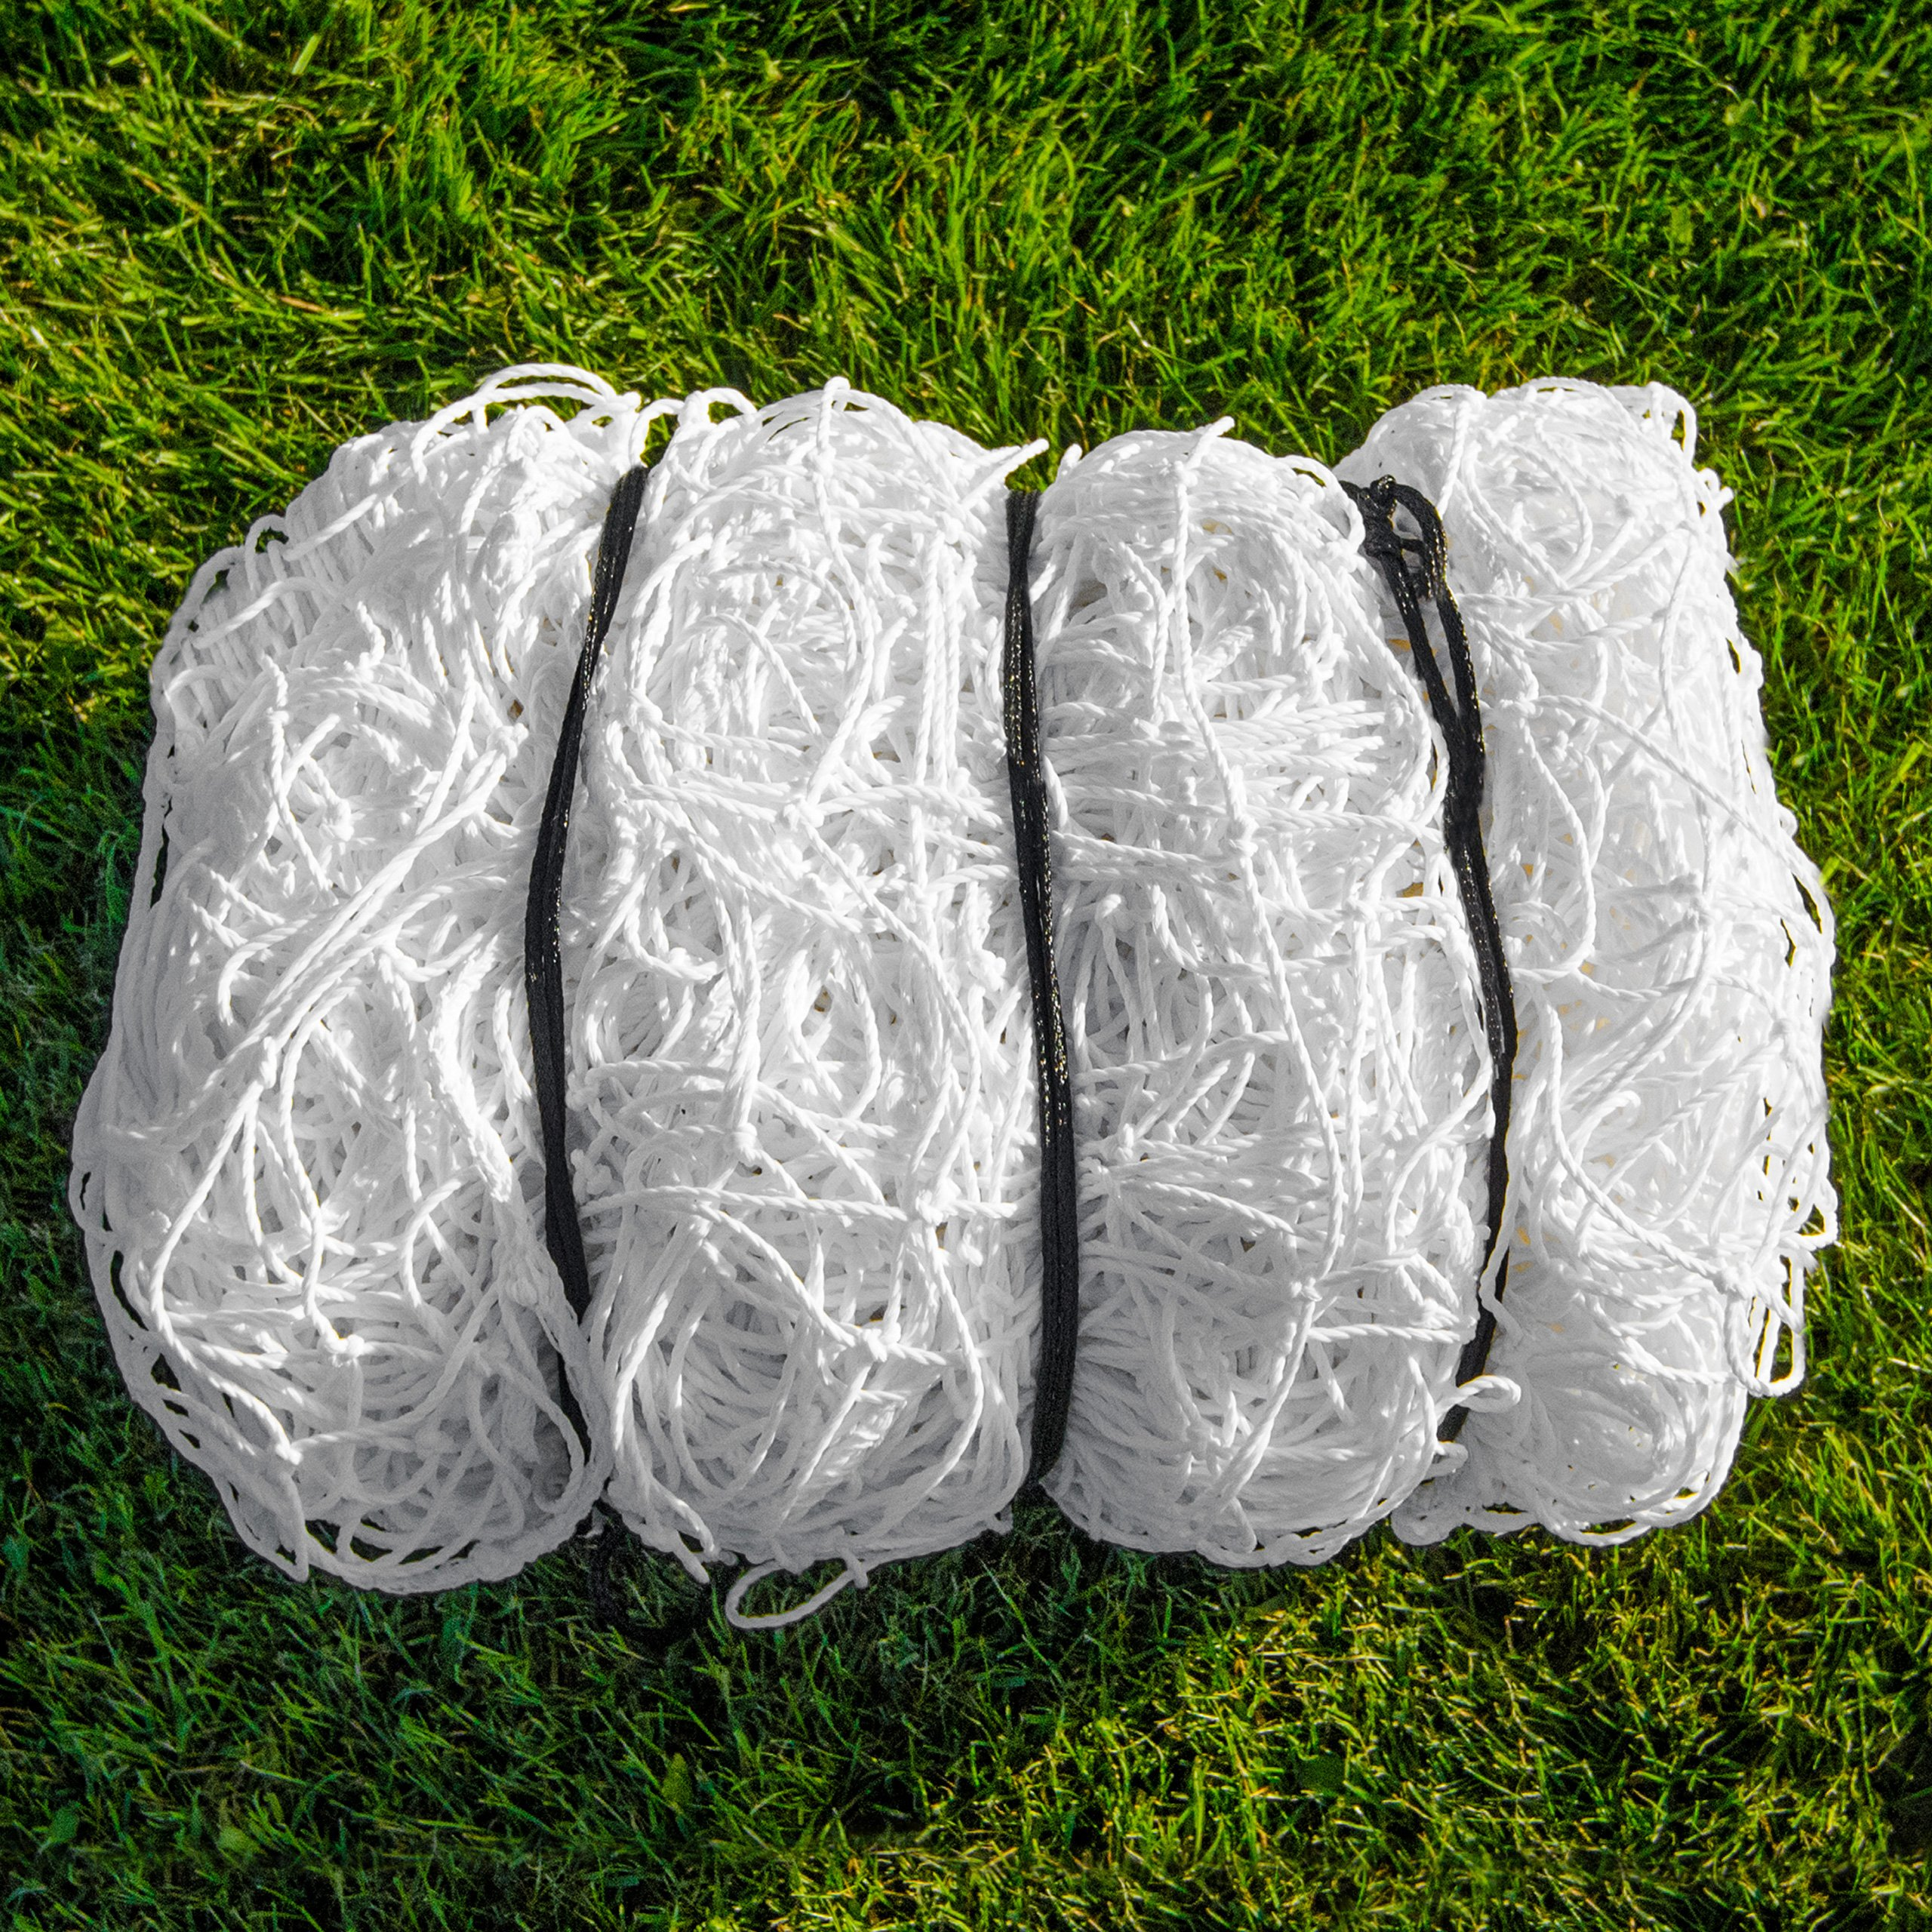 SOCCER GOAL NET - Official FULL SIZE FIFA Spec - 24x8 / 24' x 8' Super Heavy Duty [NET WORLD SPORTS]